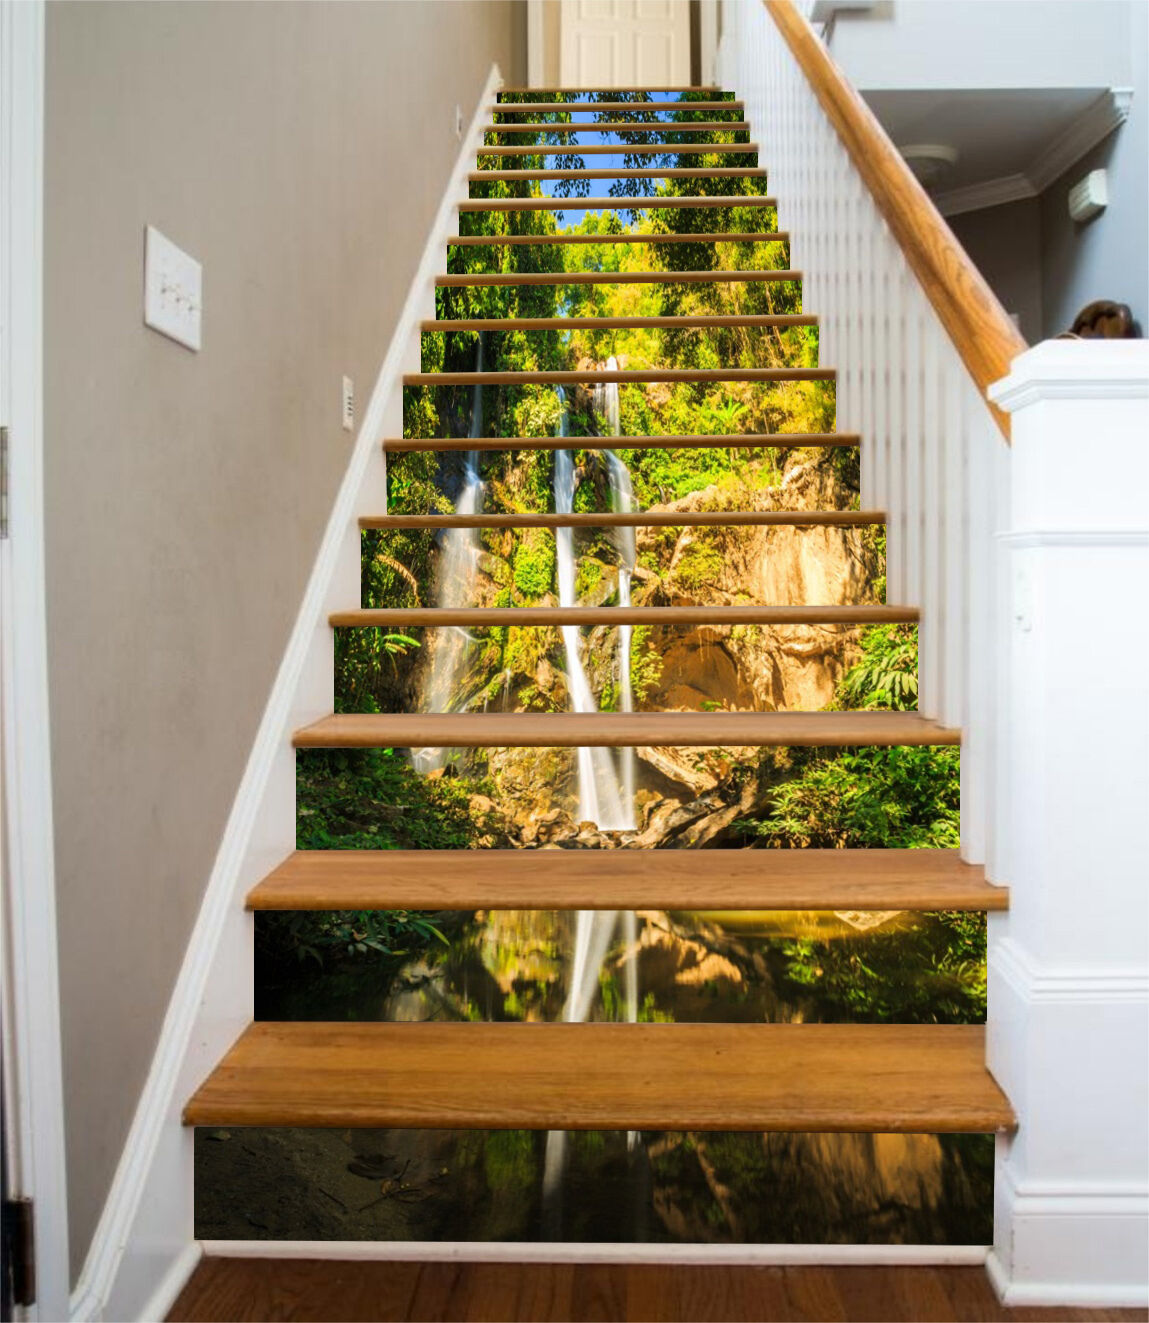 3D Nature Scenery 4 Stair Risers Decoration Photo Mural Vinyl Decal WandPapier UK